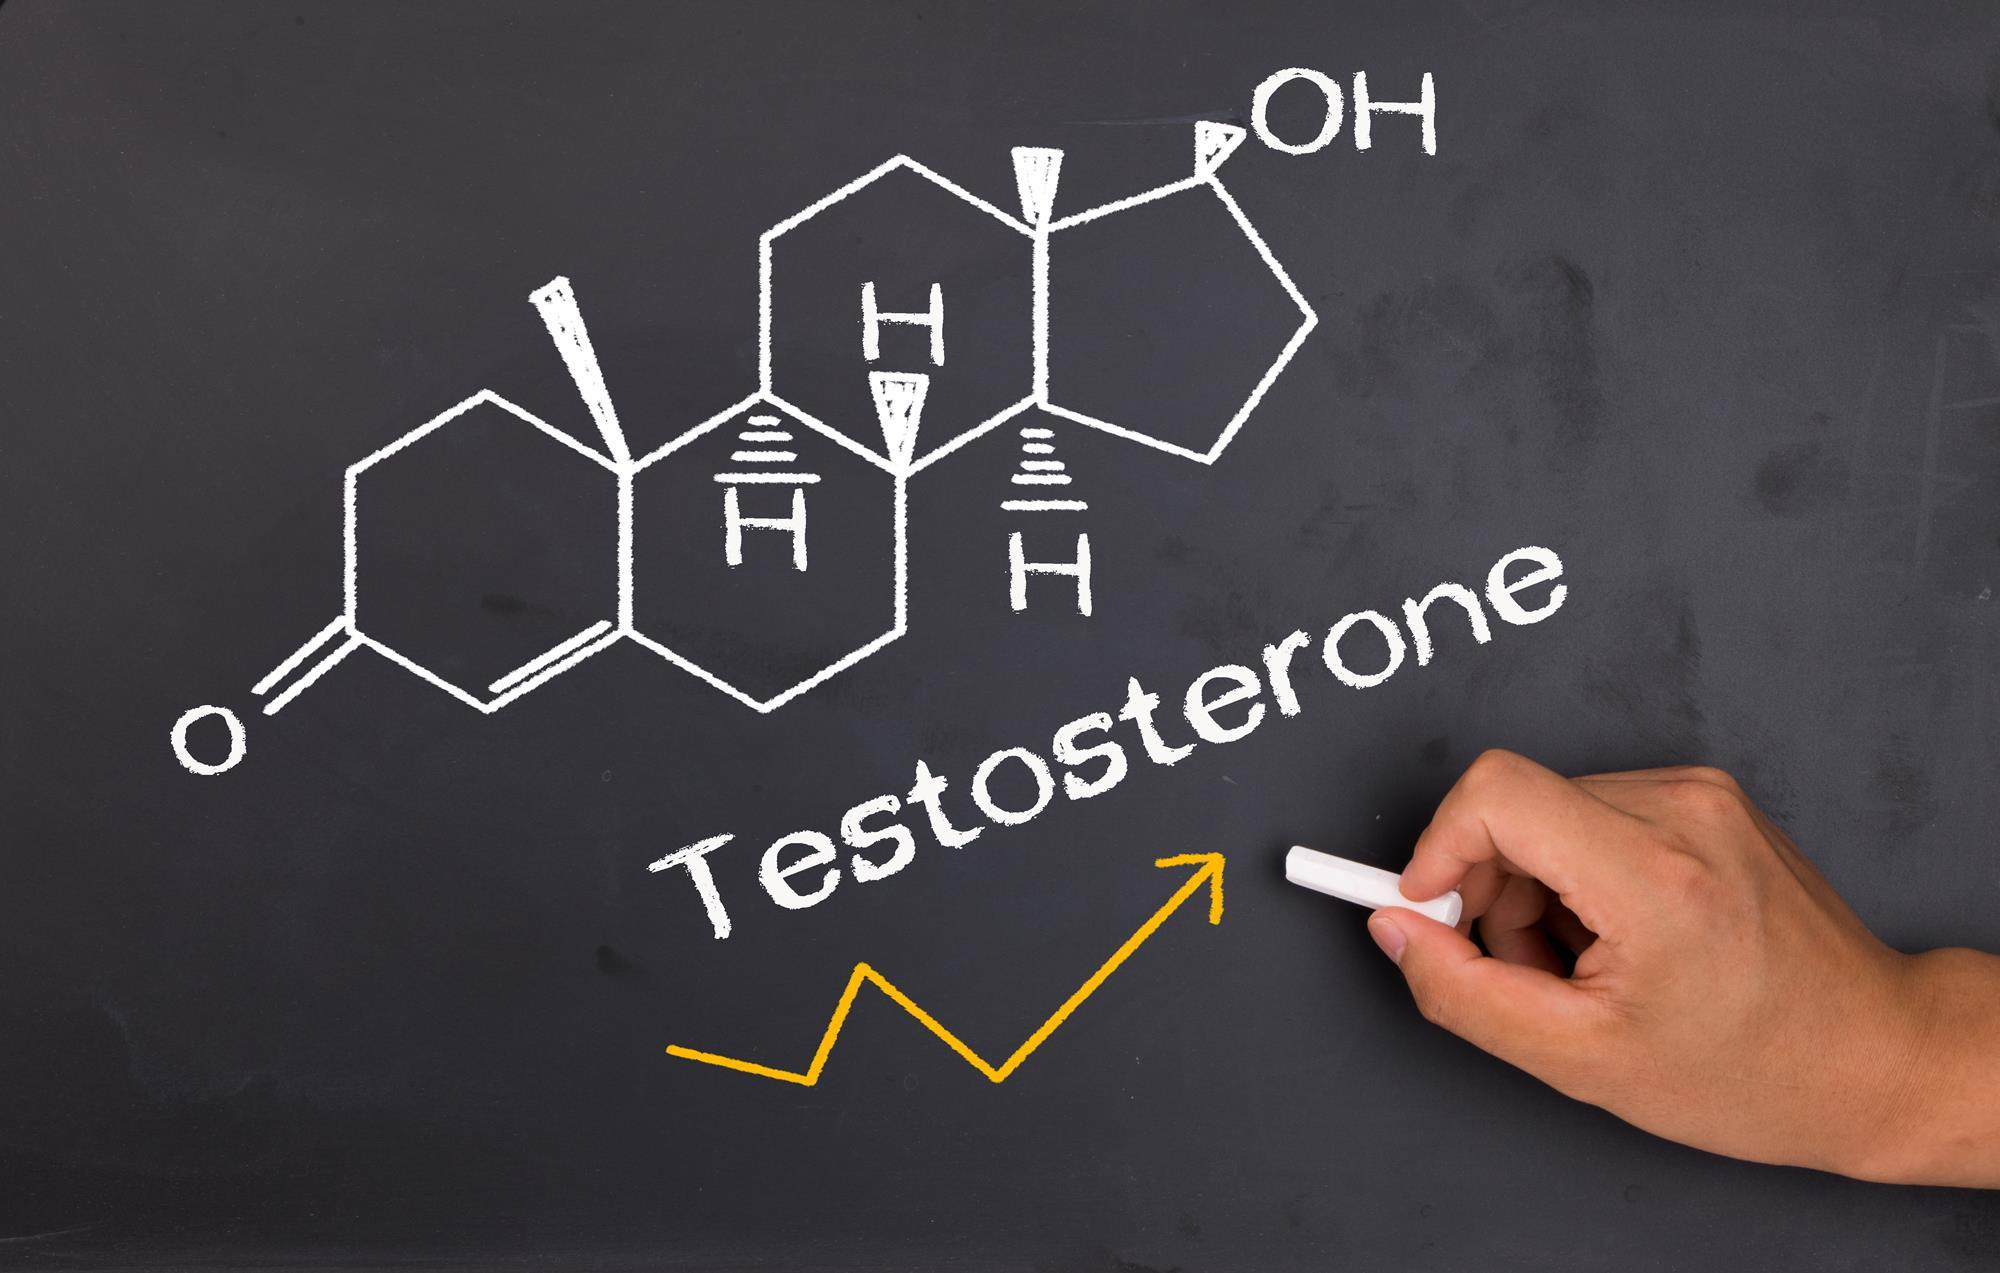 Testosterone deficiency: treat men who have bothersome symptoms